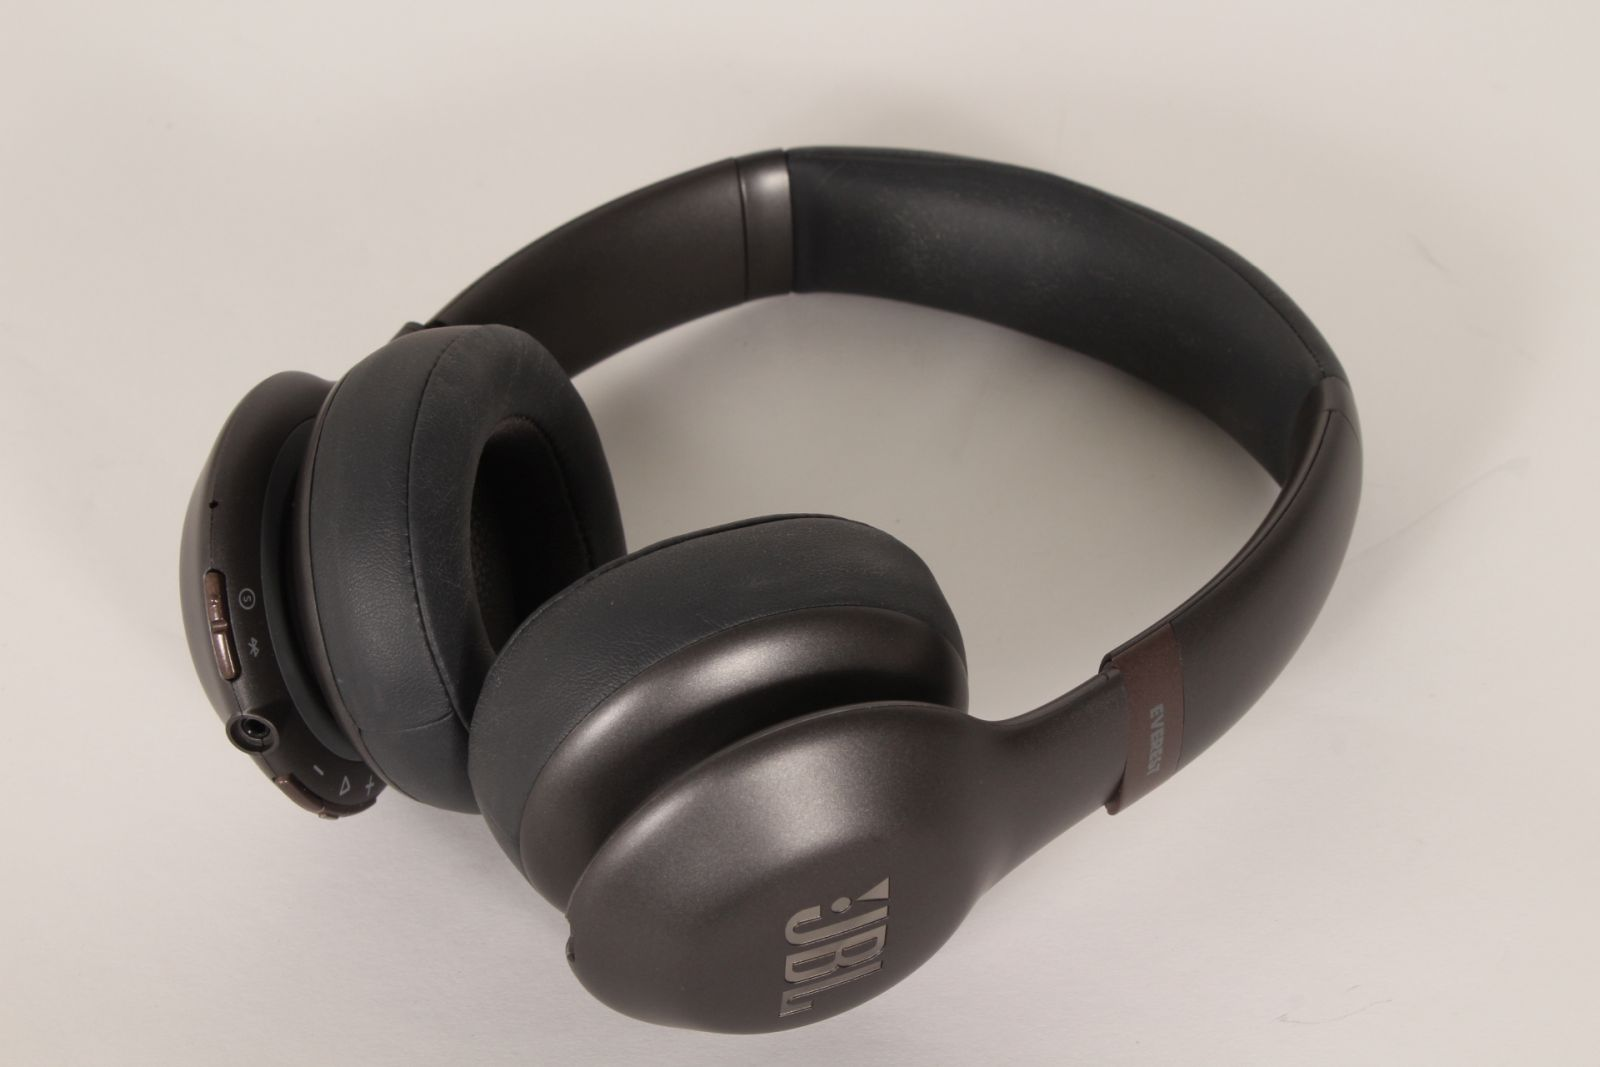 8cbb04298dd Detalles acerca de JBL Everest 310 Wireless On-Ear Headphones Gun Metal